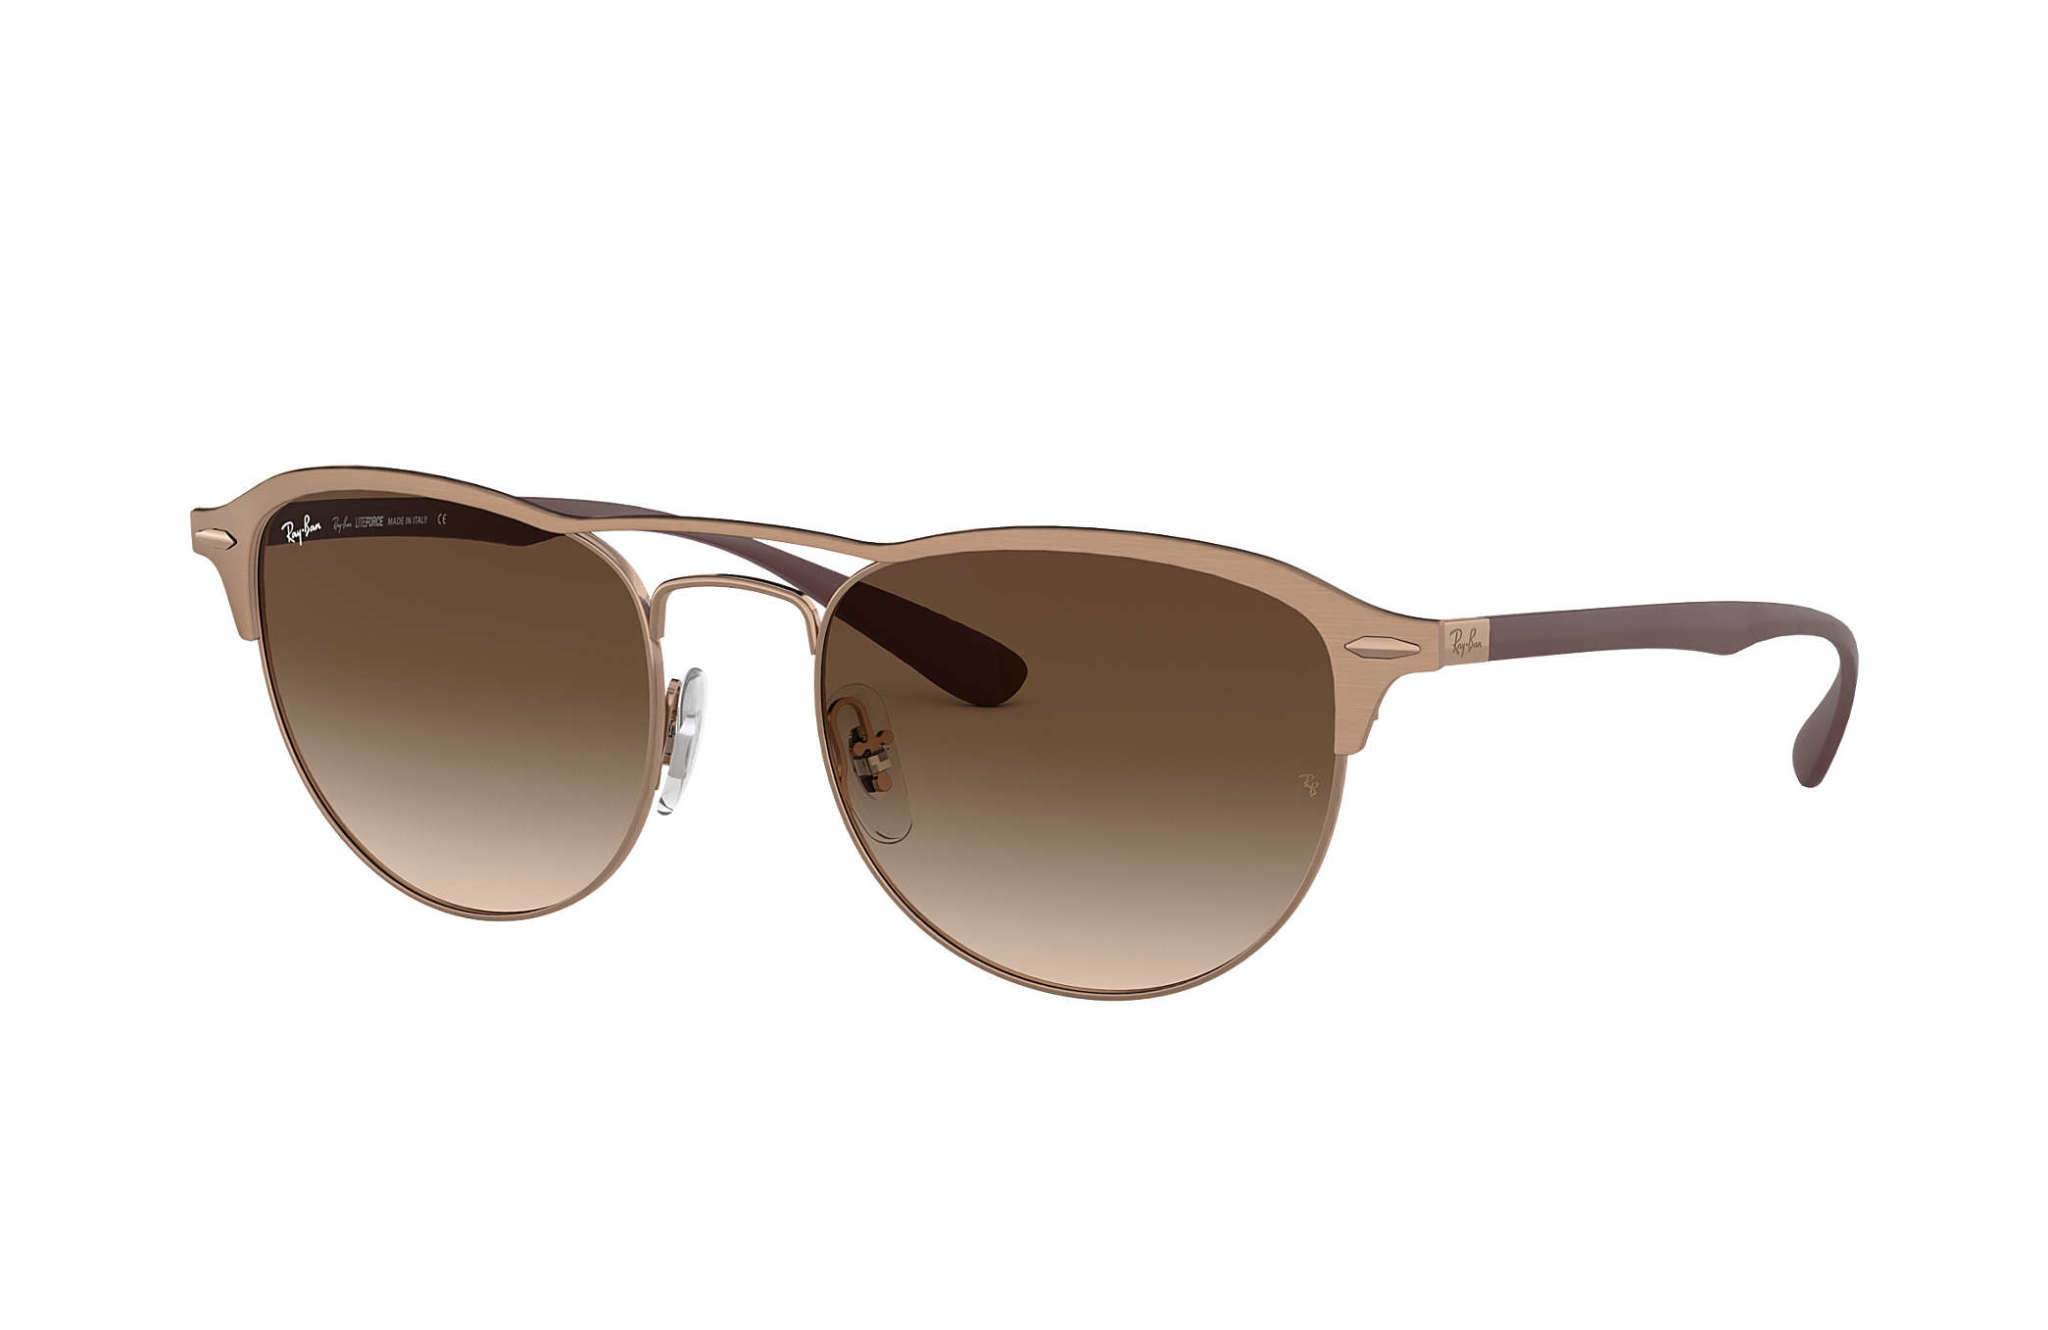 43 Ray Ban Light Brown/Brown-1